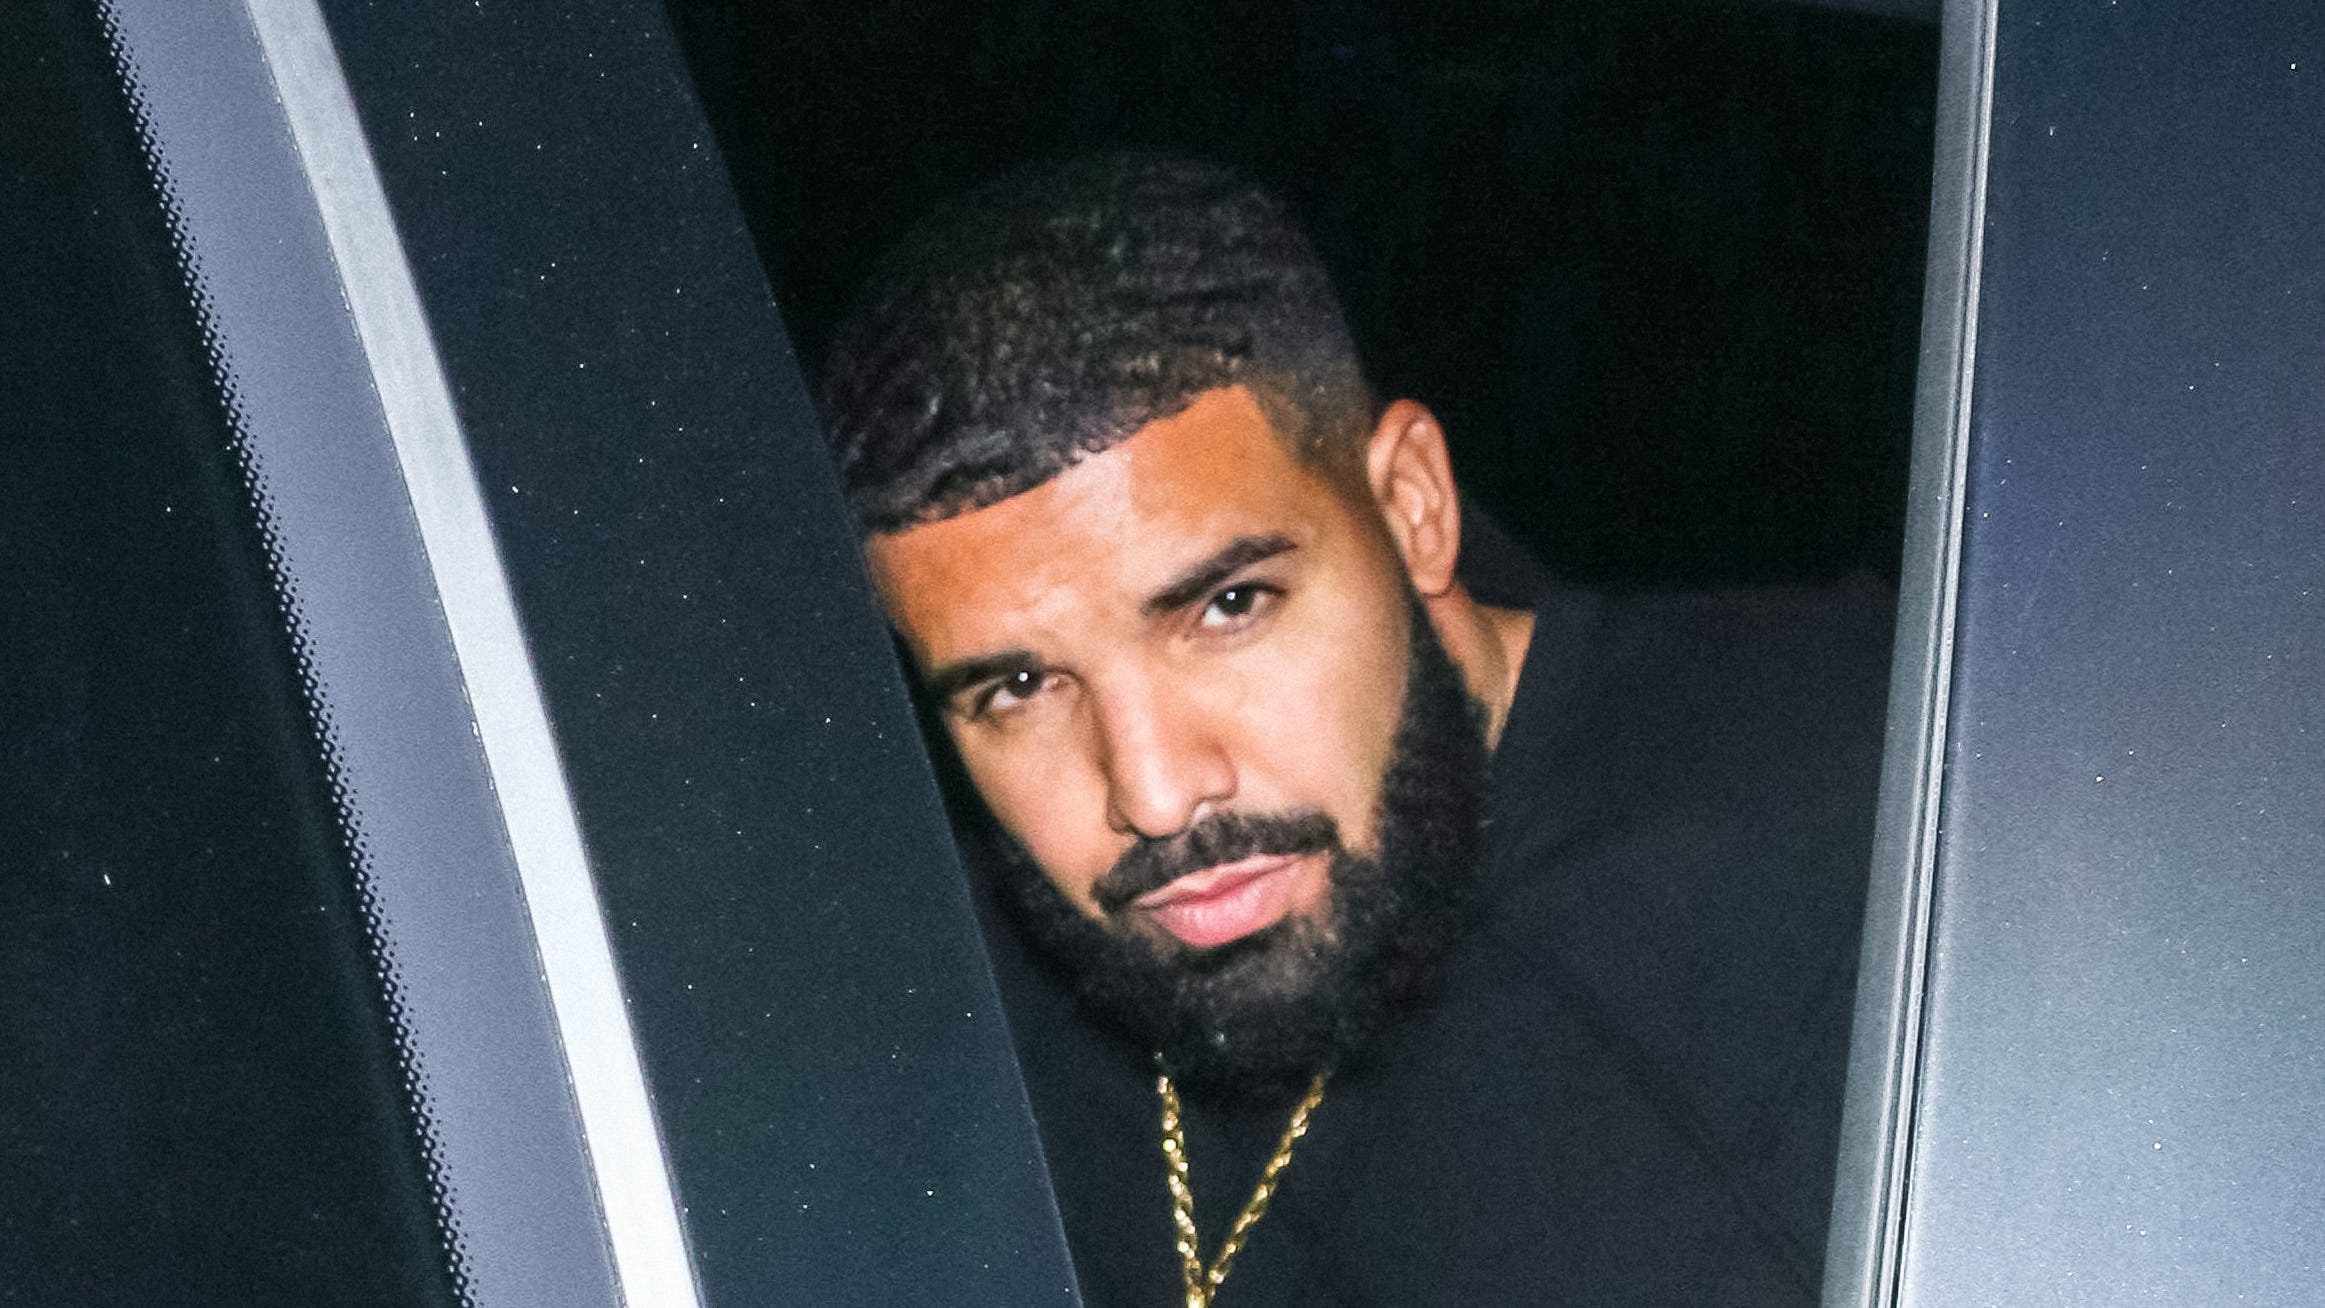 Lonely at the Top: 6 Sad Stoic Drake Songs